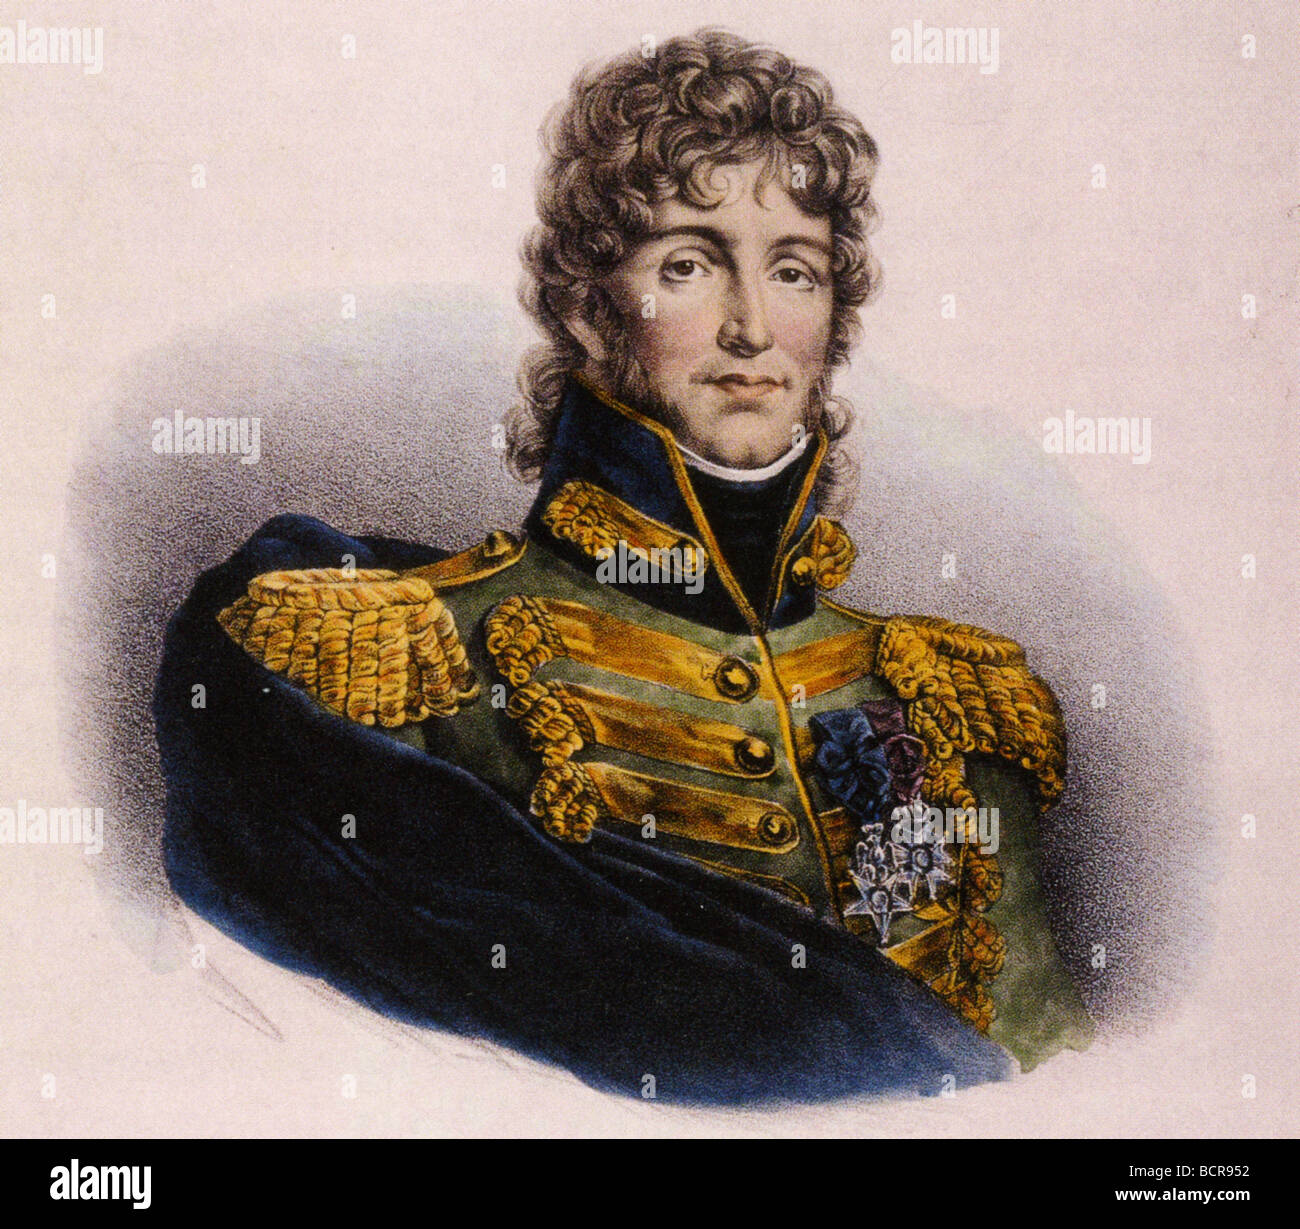 JOACHIM MURAT   French soldier and King of Naples 1767-1815 - Stock Image